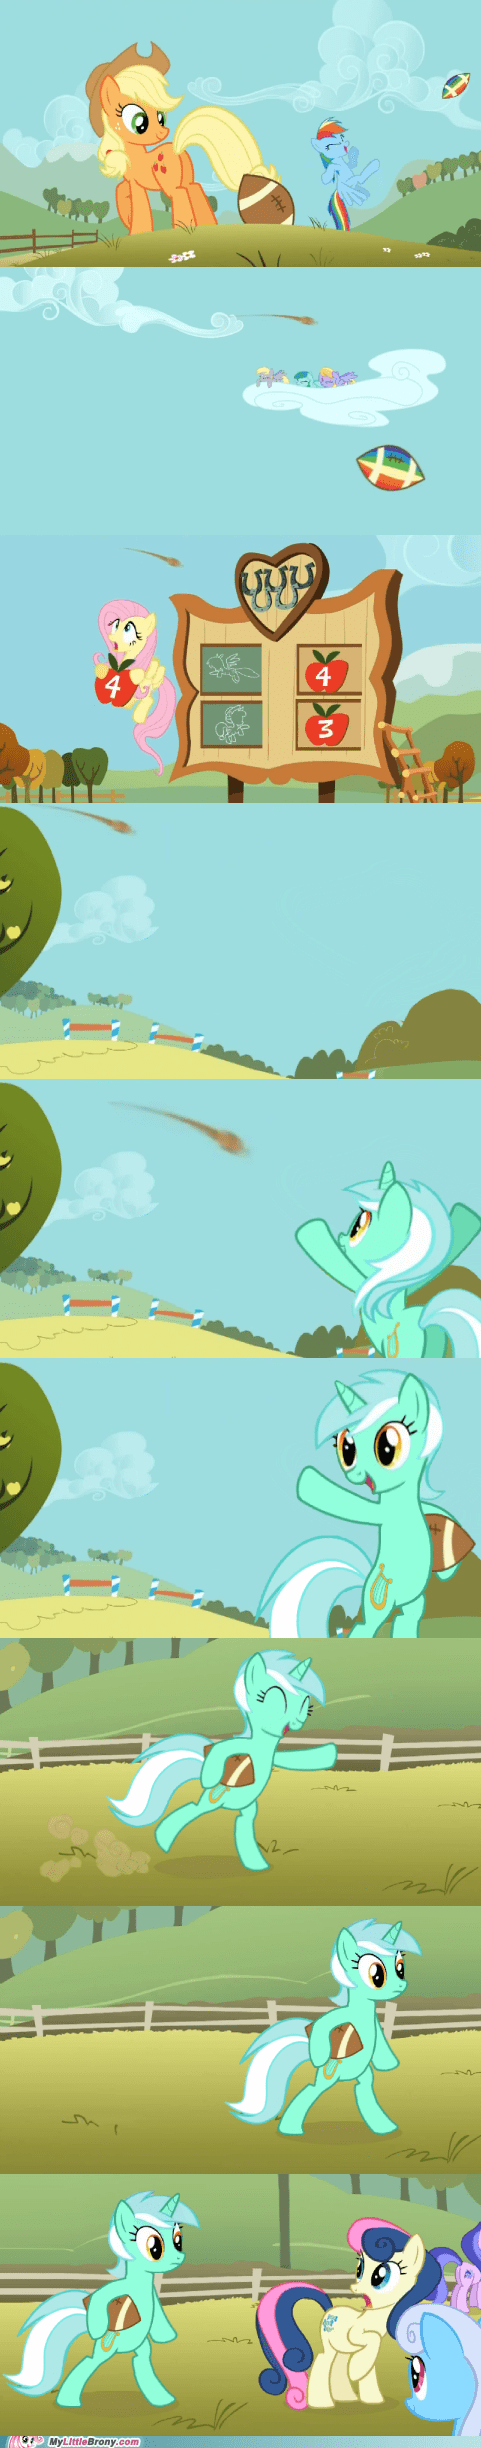 lyra,Awkward,comic,football,having fun